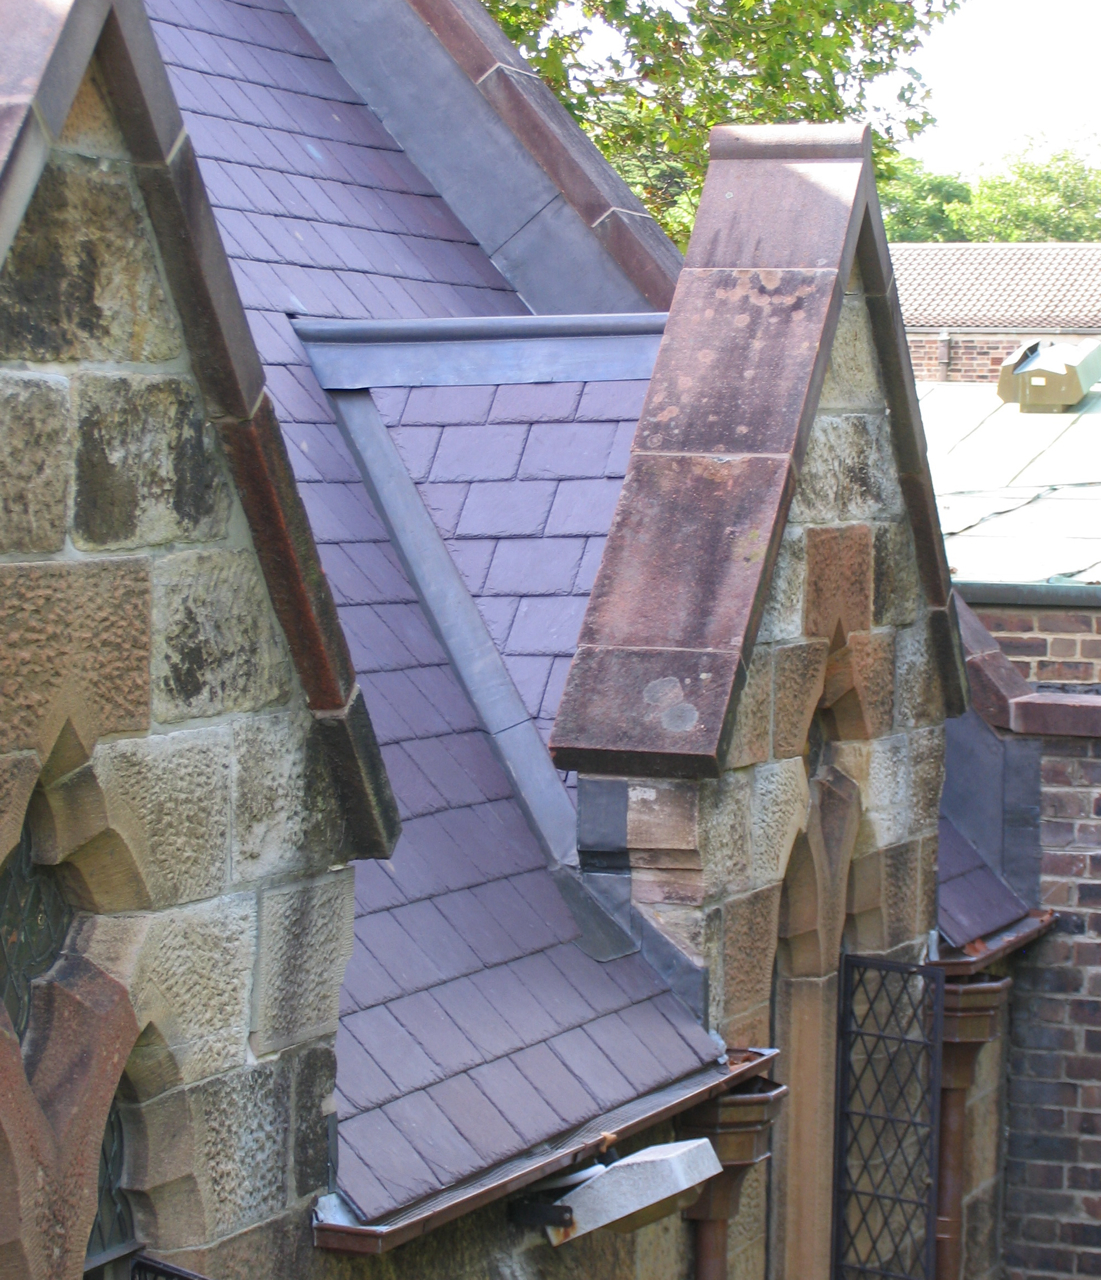 Heritage slate roofing sydney, Welsh penrhyn roof slate, traditional leadwork, lead ridge capping, lead valleys, lead flashings, St.Pauls' College,Sydney University